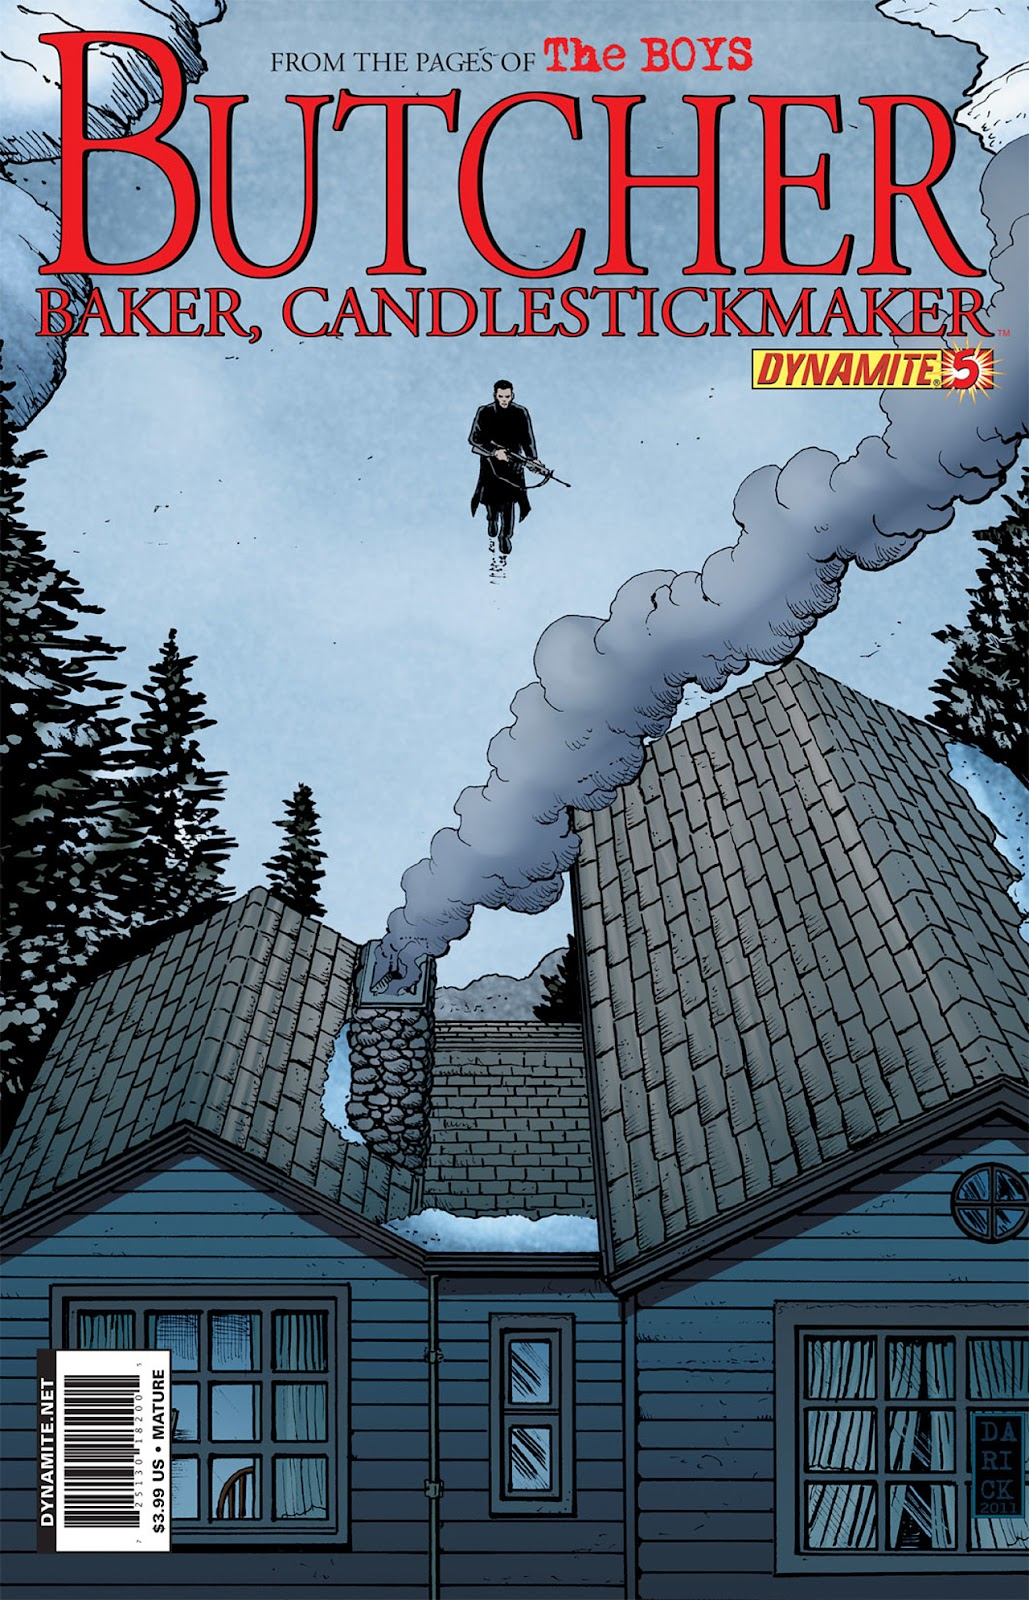 Read online The Boys: Butcher, Baker, Candlestickmaker comic -  Issue #5 - 1